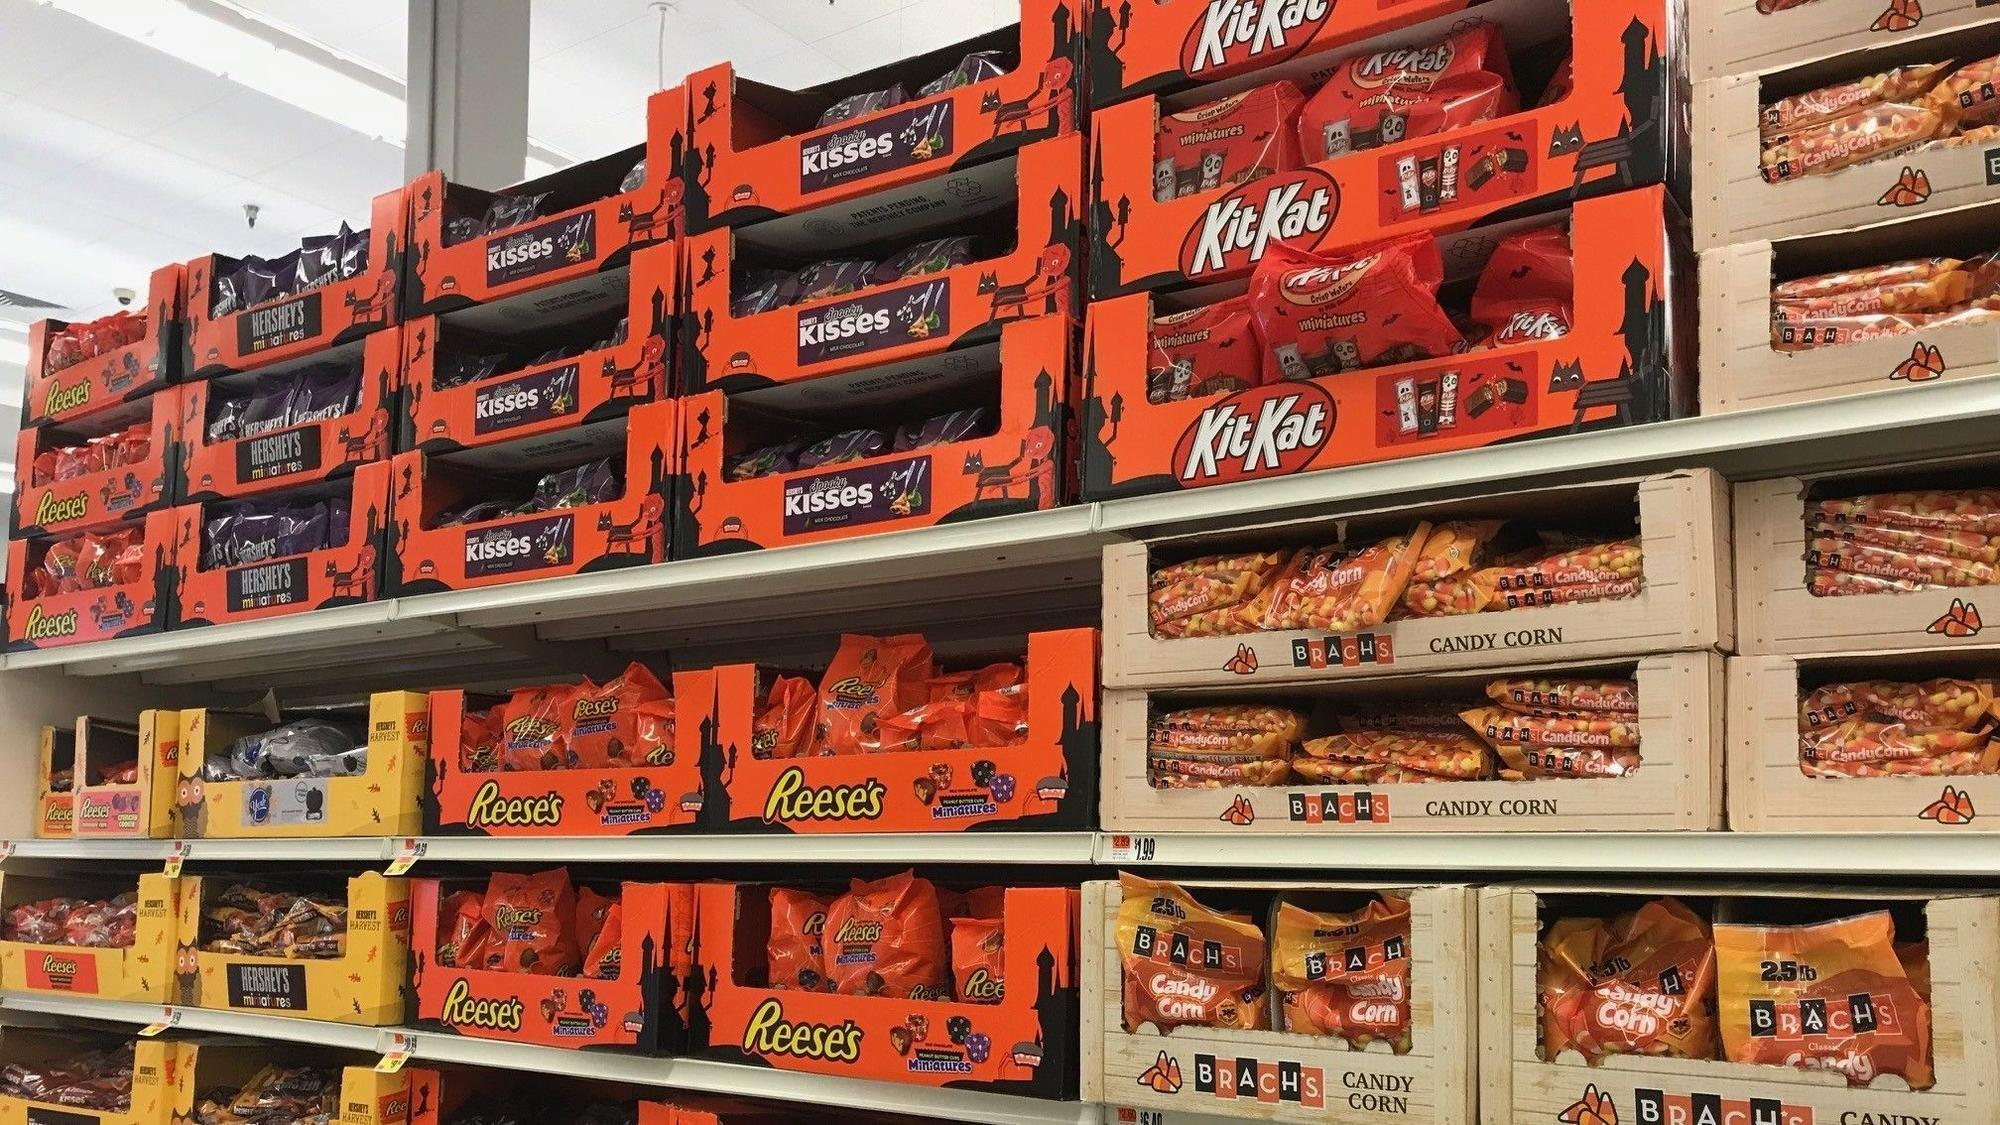 scary, huh? halloween candy is popping up already on grocery shelves